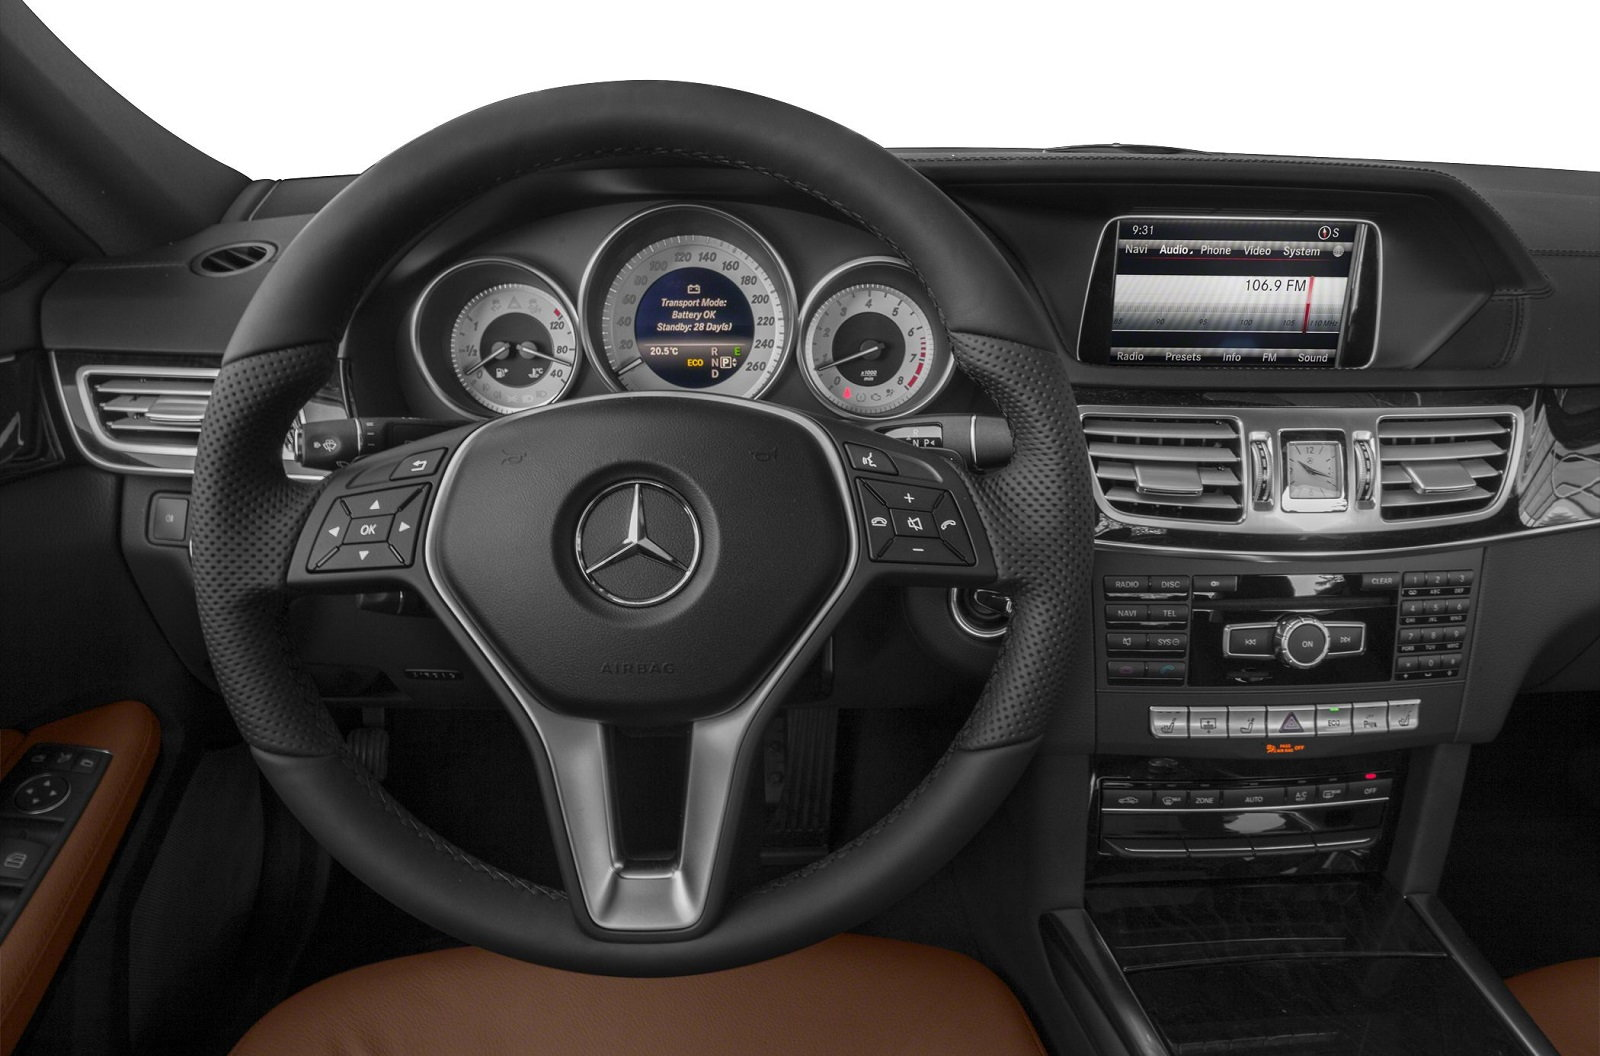 Mercedes-Benz E350 Interior